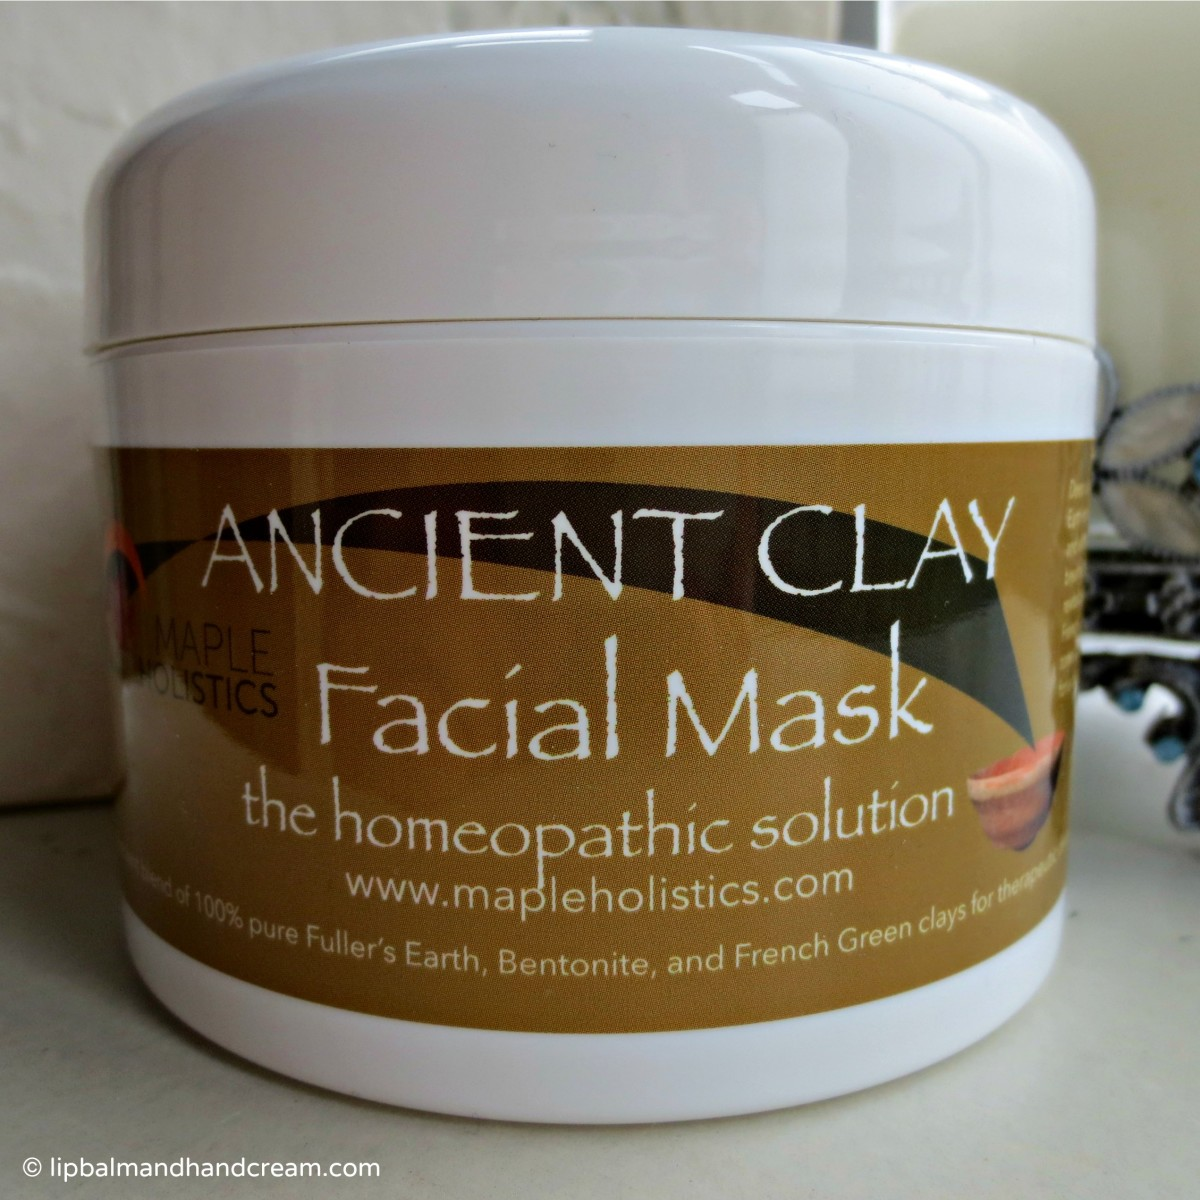 Ancient clay mask from Maple holistics – 3 ingredients only